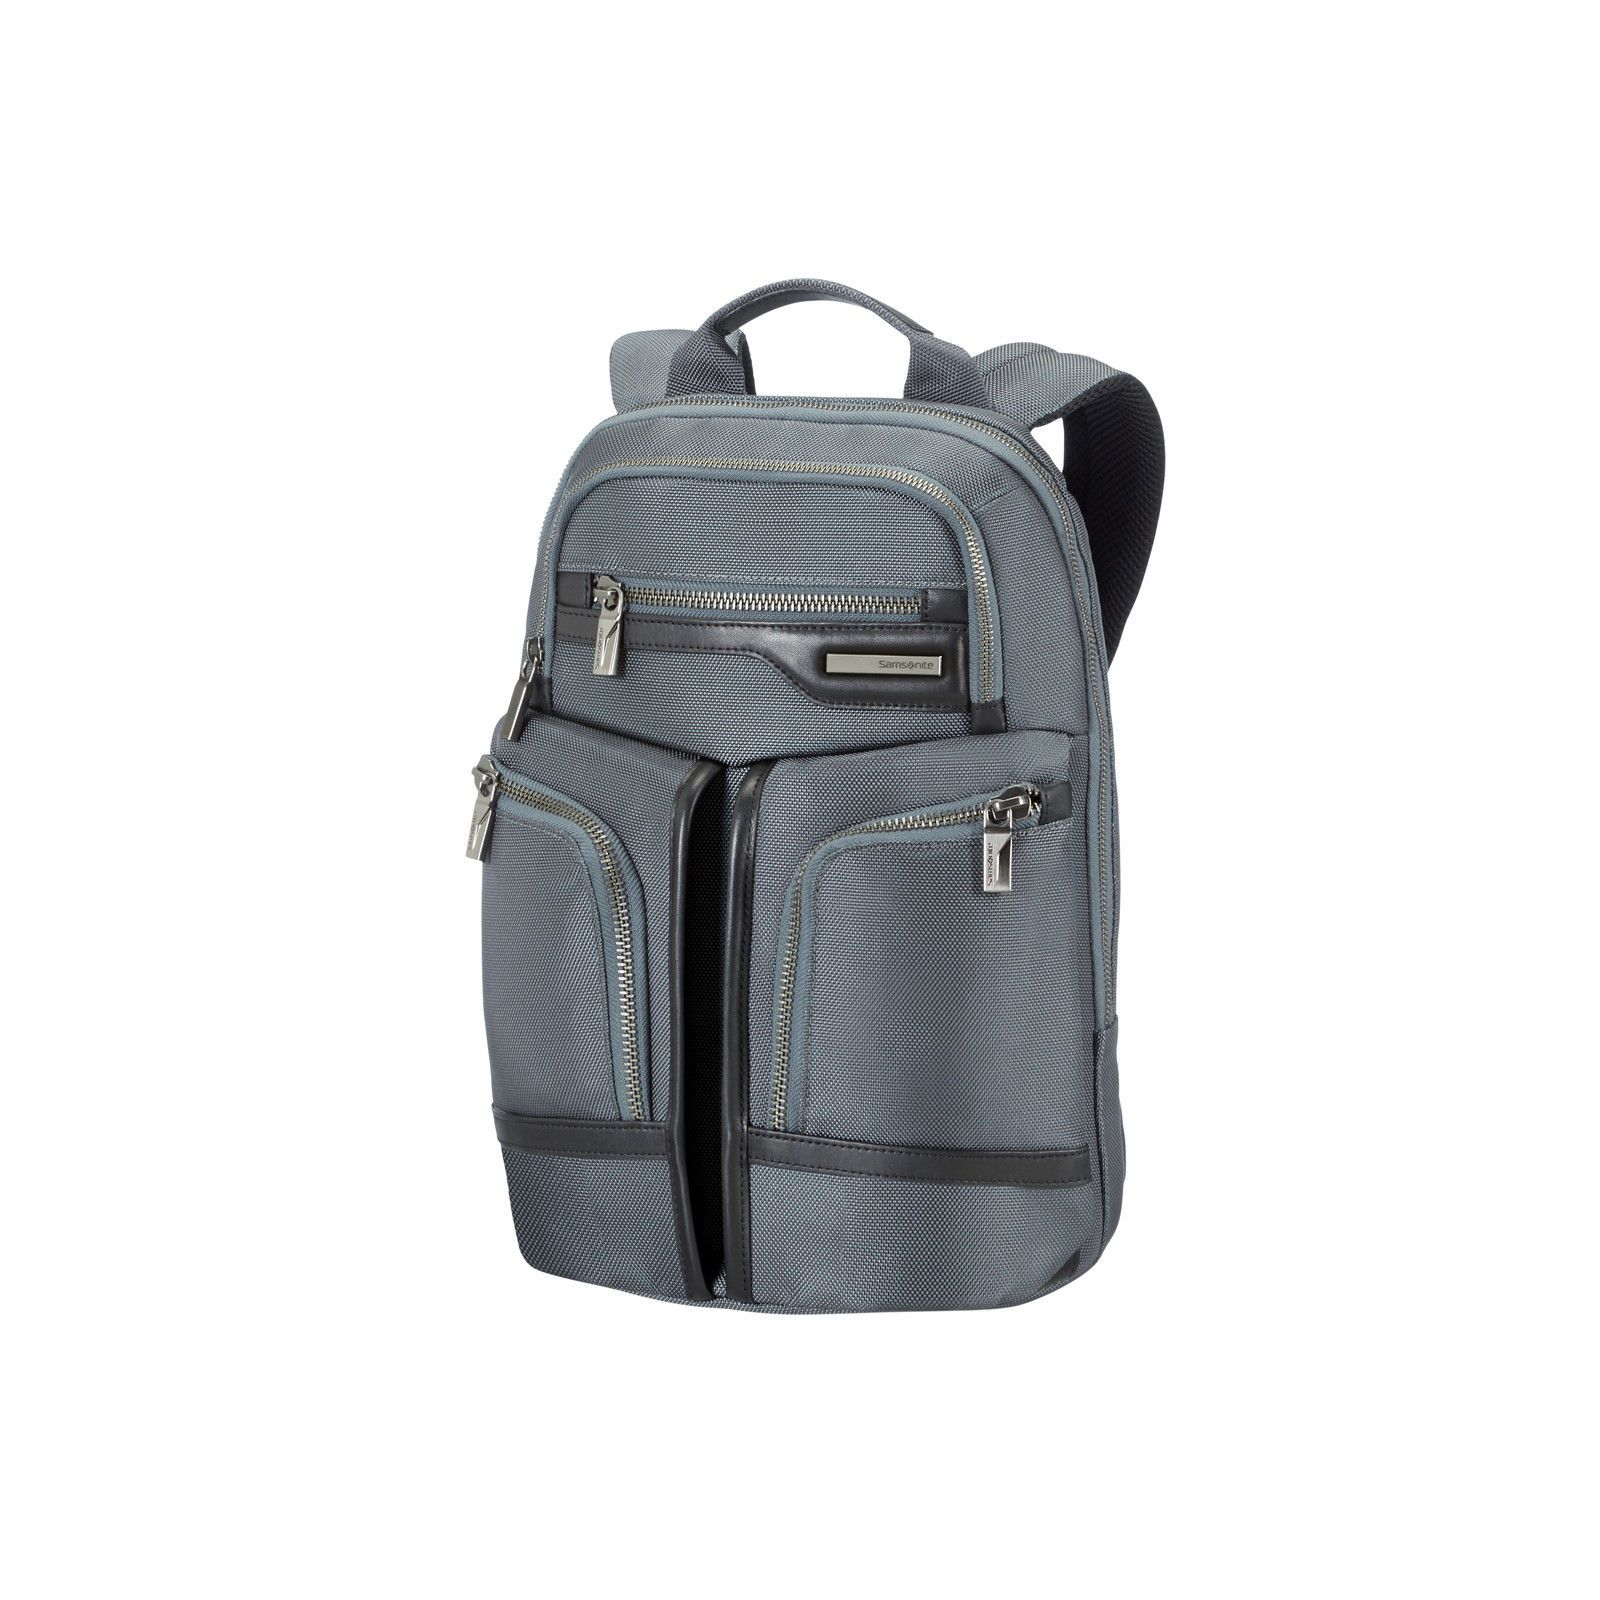 28f1e8be6c Samsonite GT Supreme Laptop Backpack 14.1 | Products | Pinterest ...